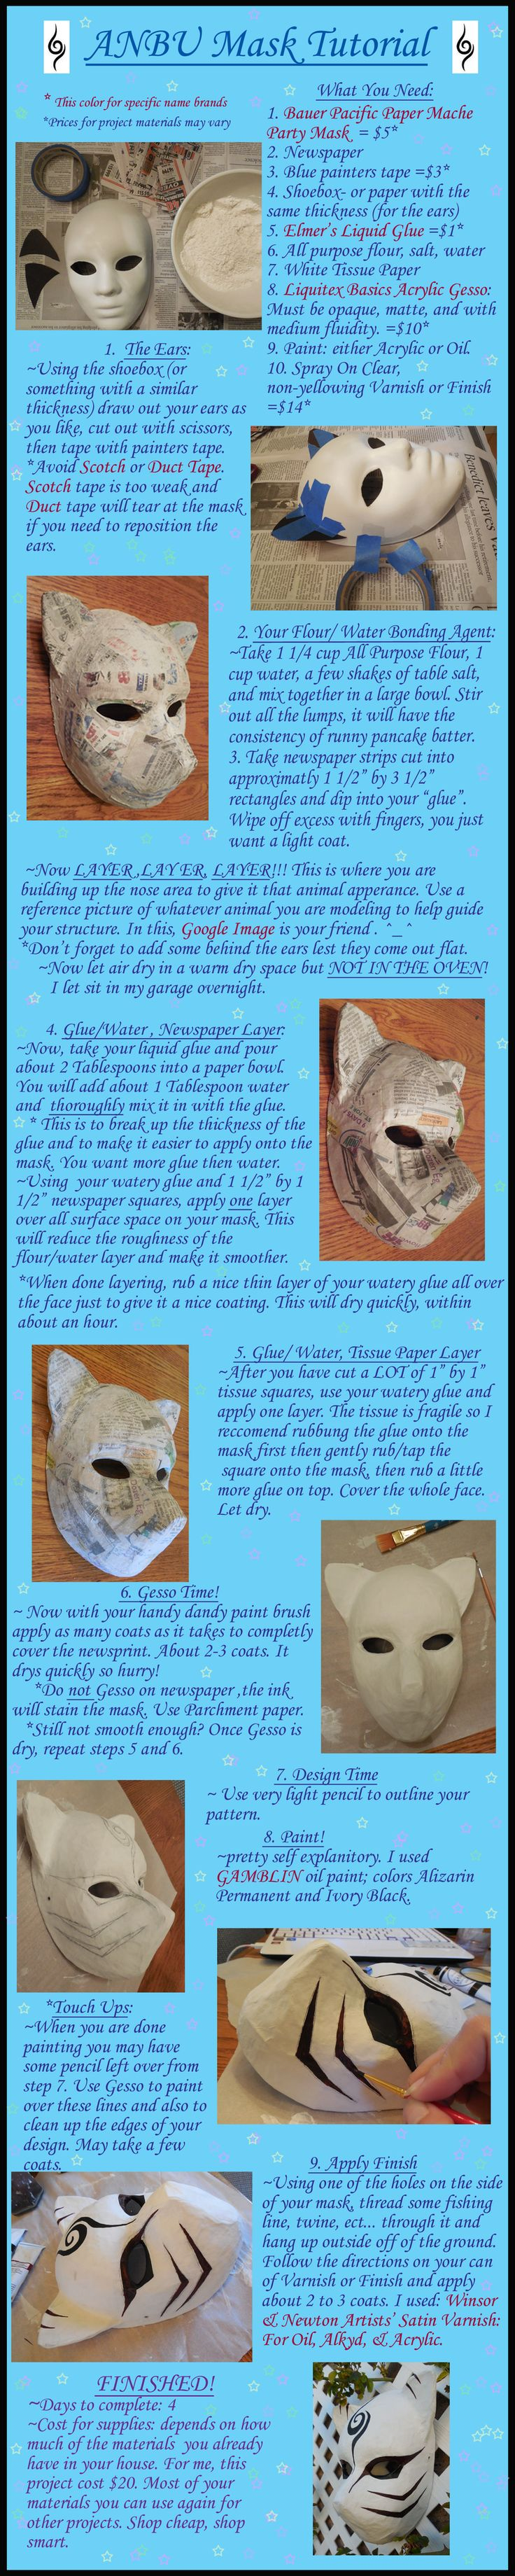 Papermache ANBU Mask Tutorial by AgentShoemaker http://amzn.to/2qVpaTc